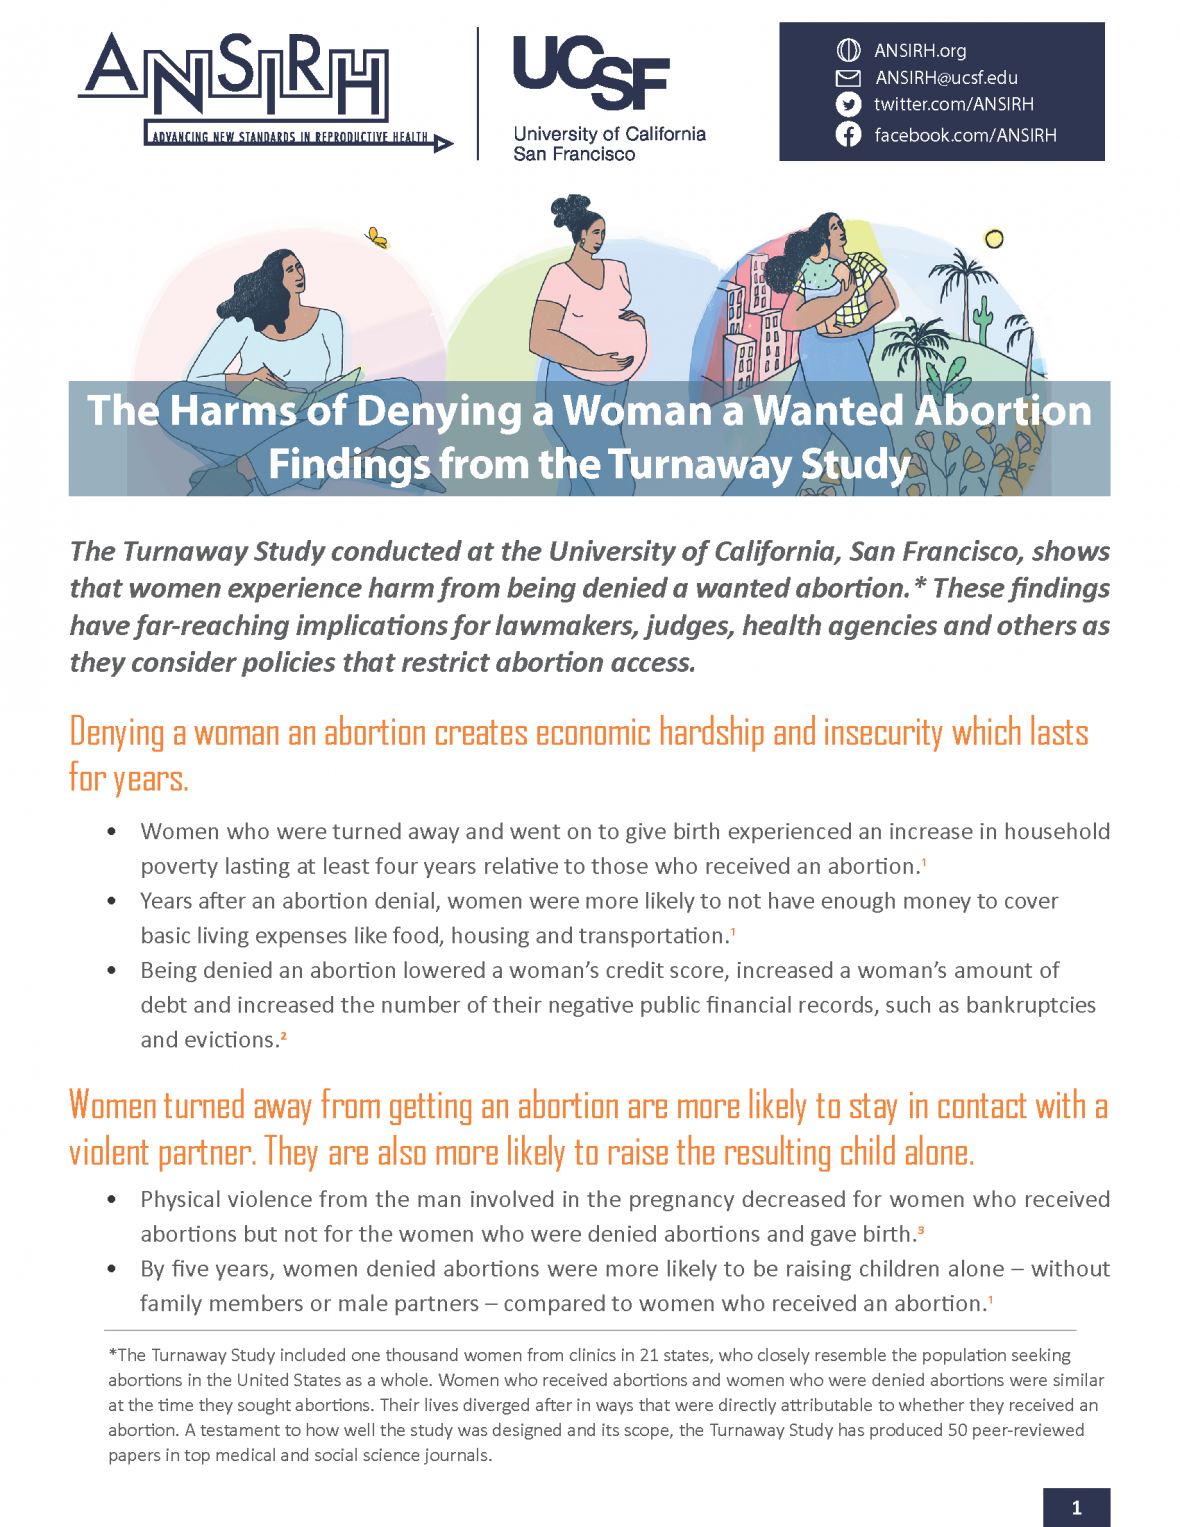 Factsheet on harms of denying someone a wanted abortion